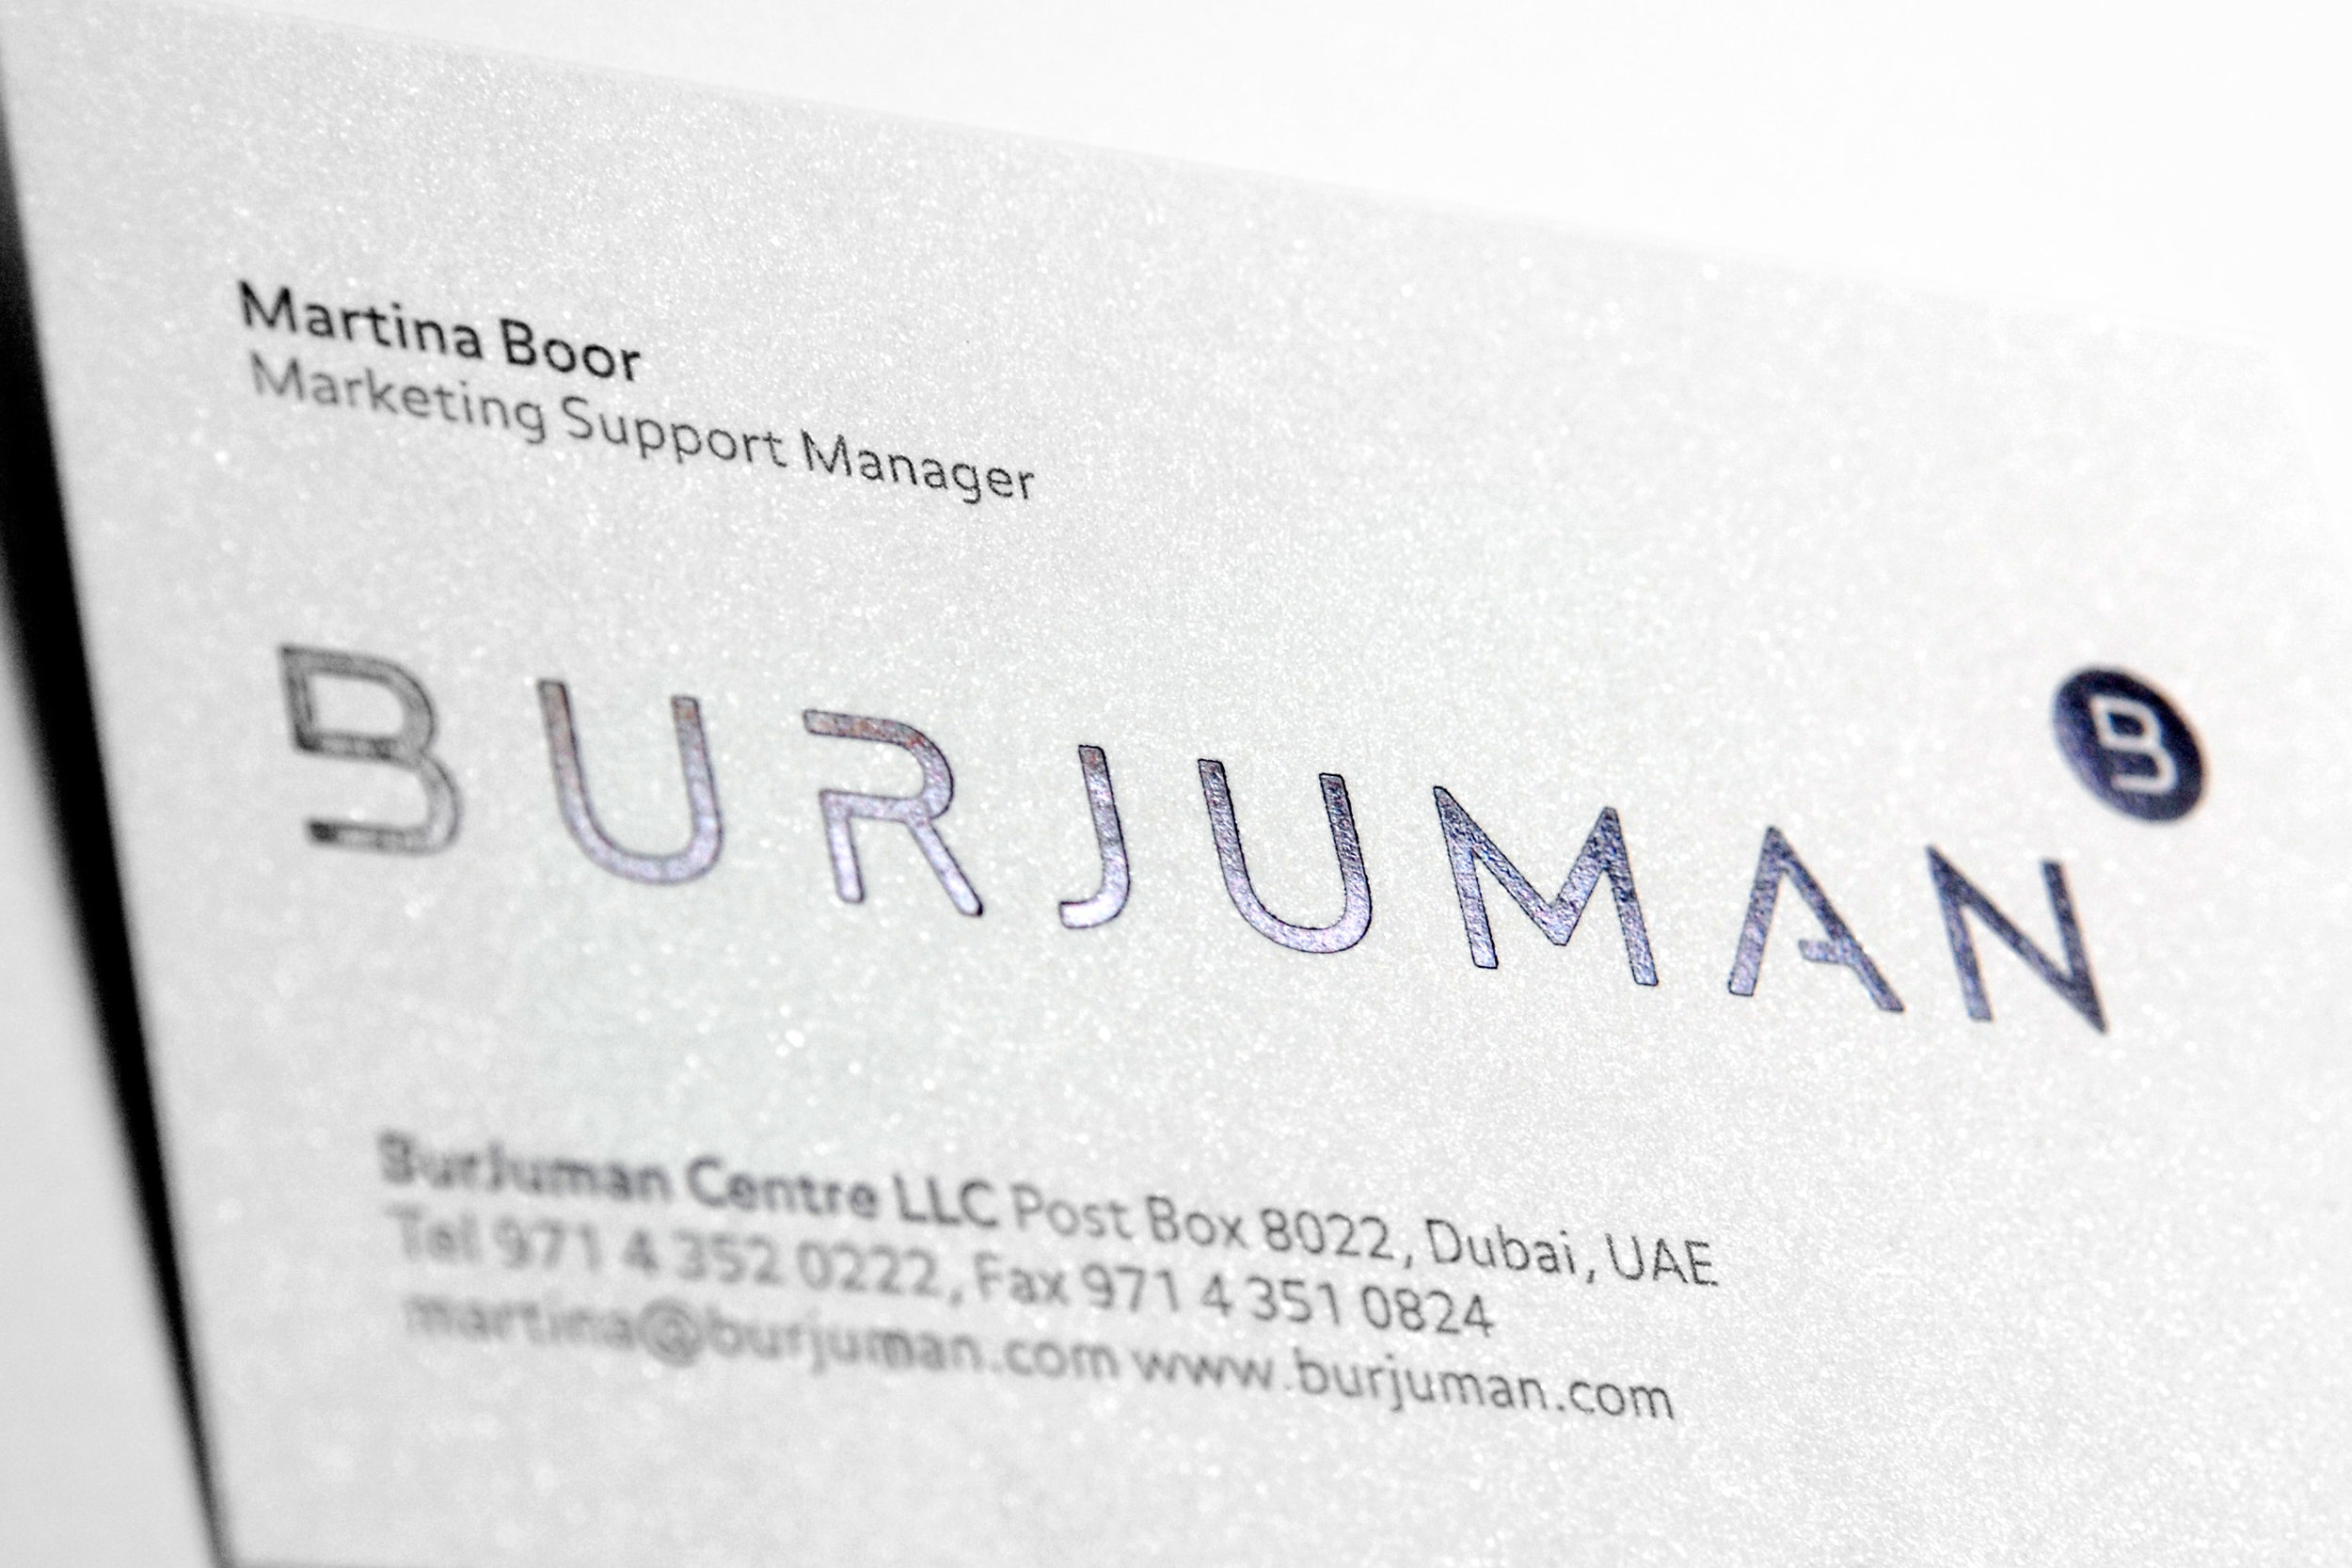 The new BurJuman business card.